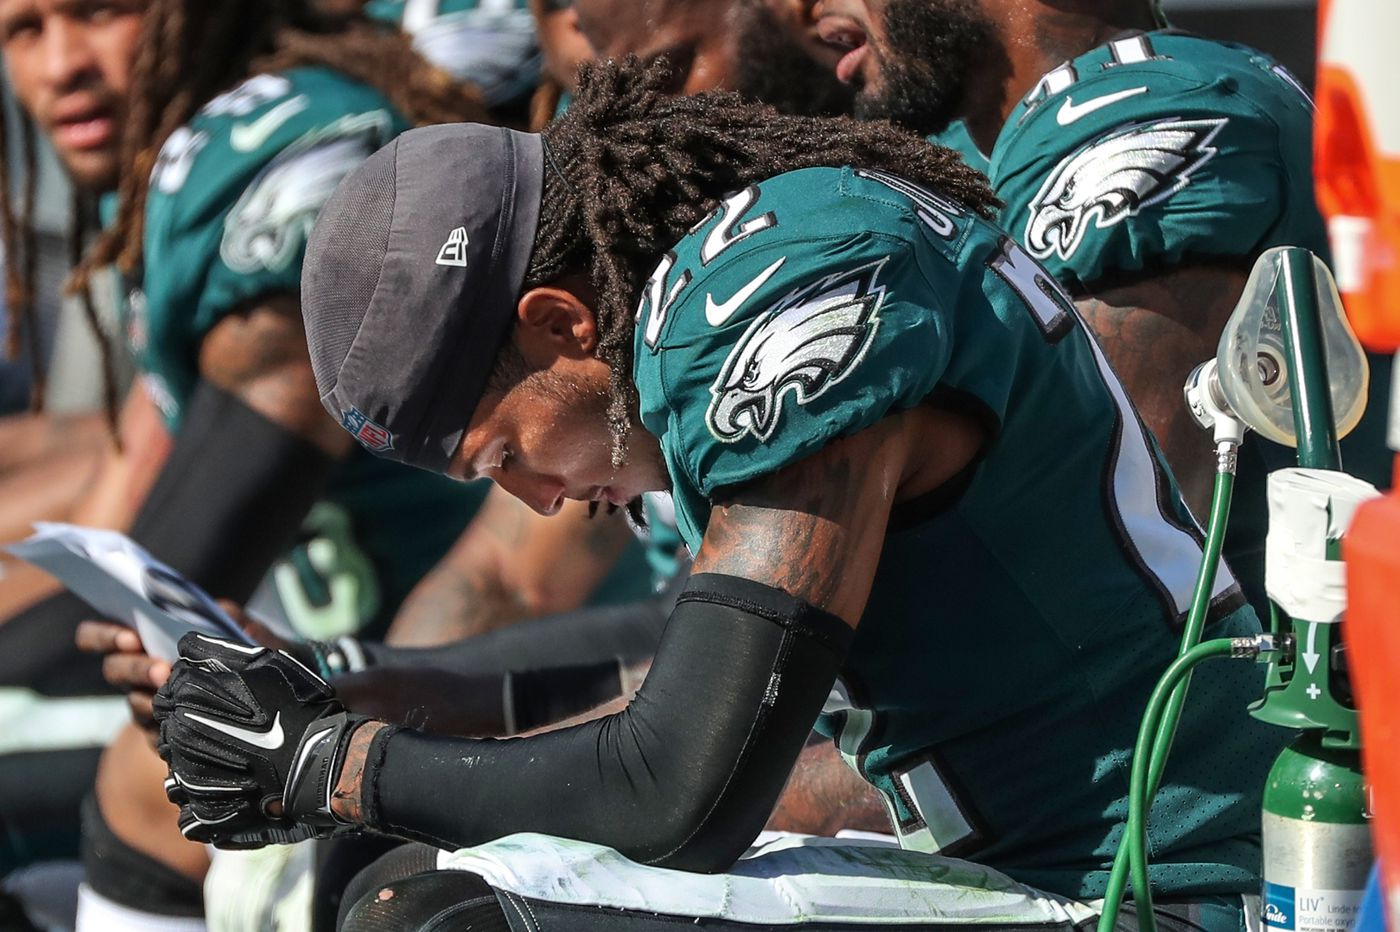 Eagles cornerback Sidney Jones' durability remains in question. Could gaining strength help? | Jeff McLane